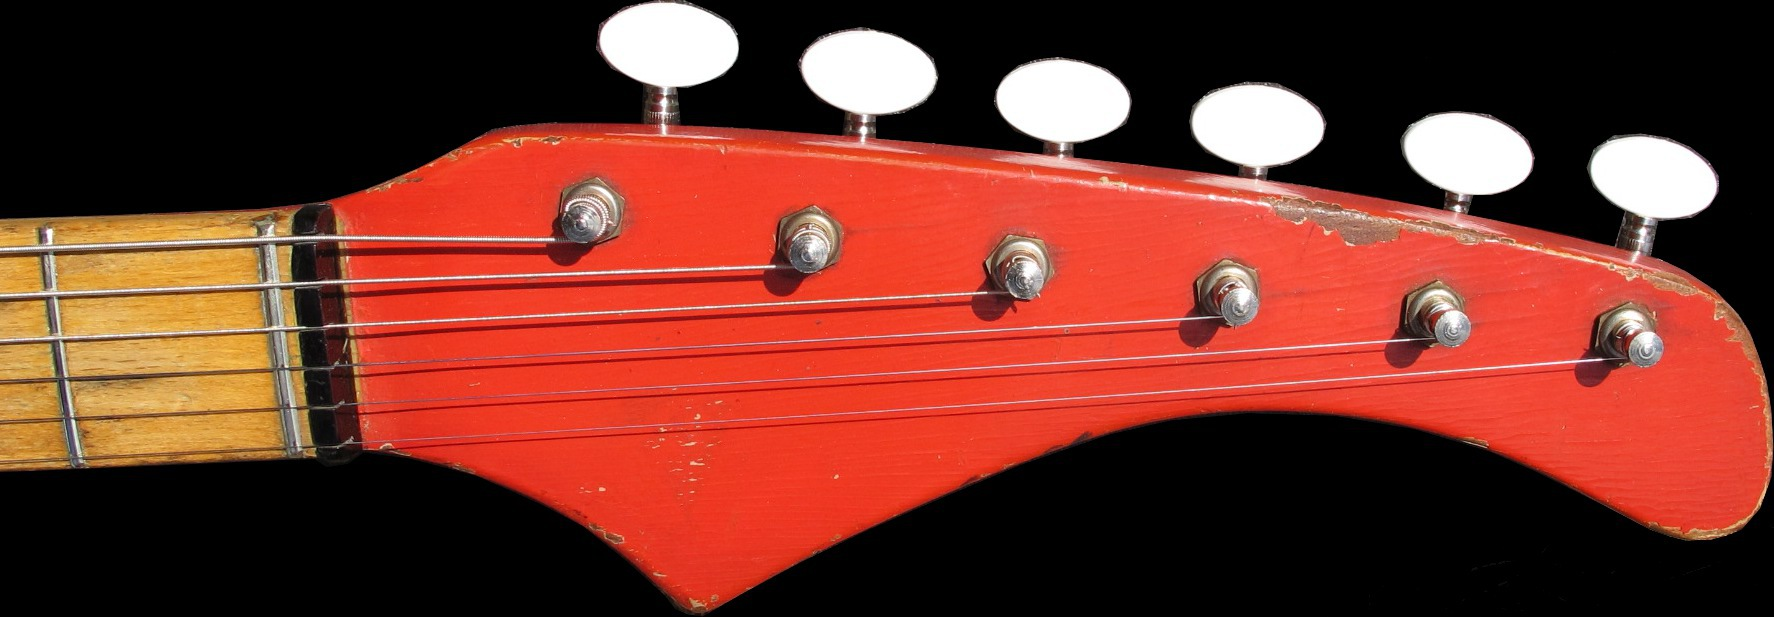 1961 HOHNER Apache headstock by Fenton Weill